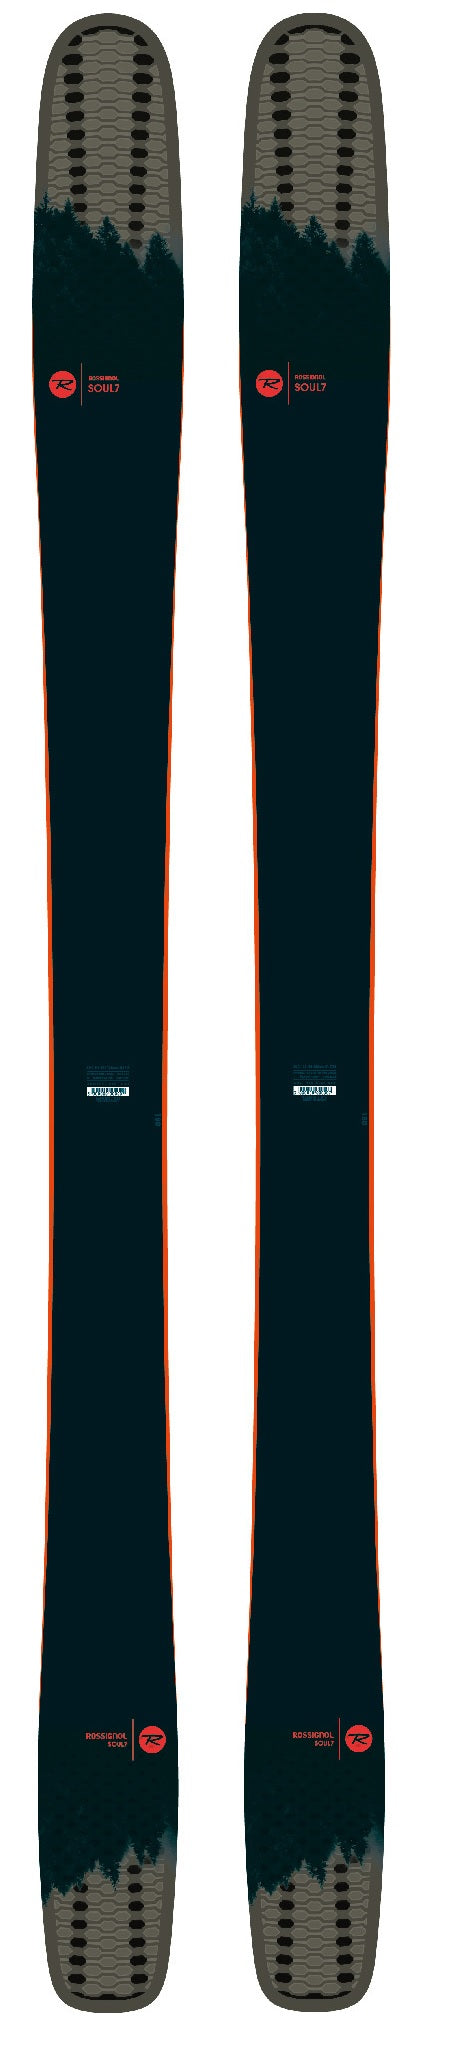 2020 Rossignol Soul 7 HD snow skis - ProSkiGuy your Hometown Ski Shop on the web